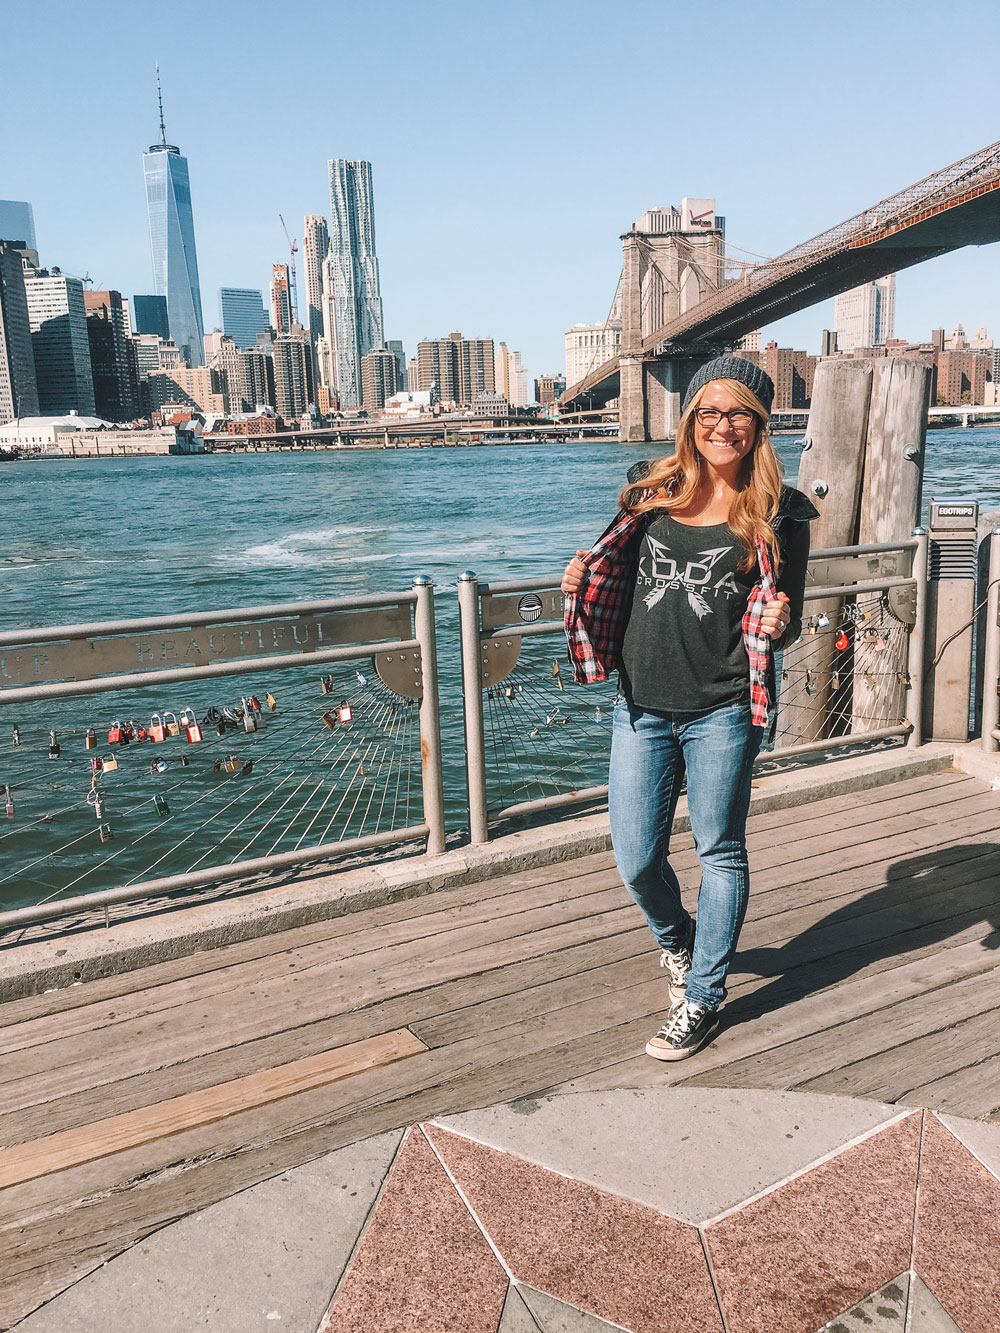 Most Instagrammable Spots in NYC: Brooklyn Bridge Park